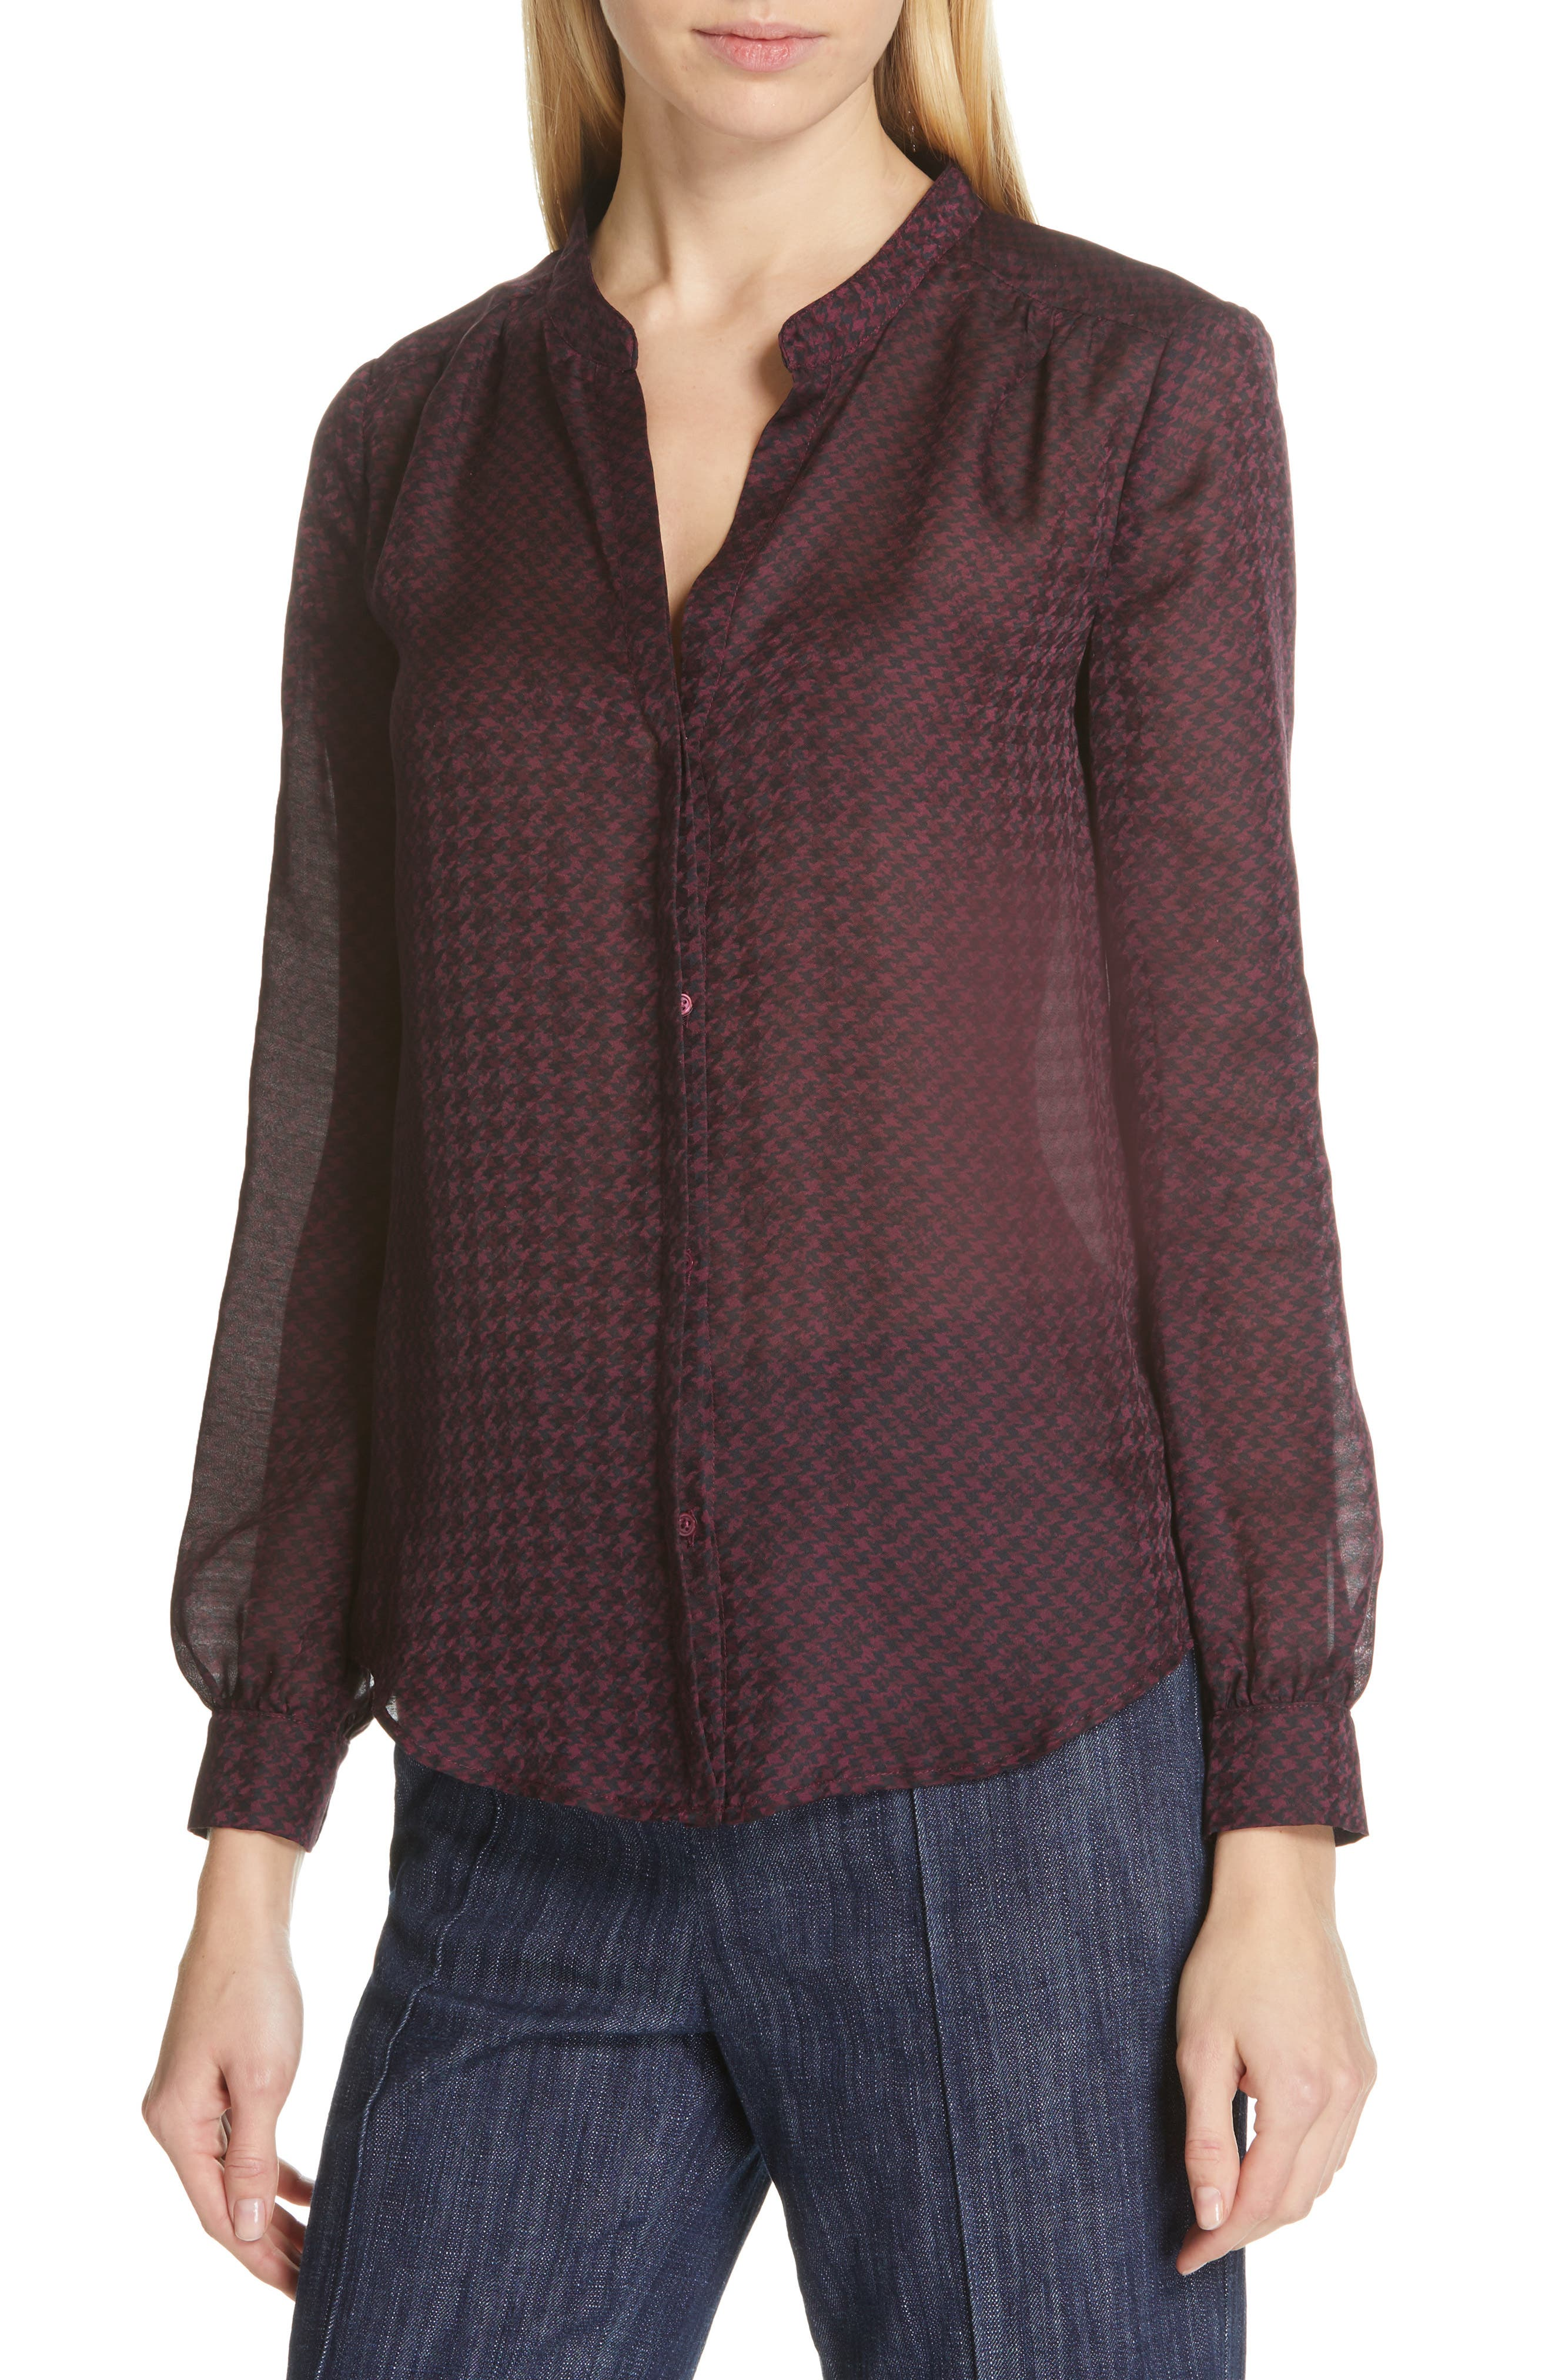 Mintee Houndstooth Check Blouse,                             Alternate thumbnail 4, color,                             501